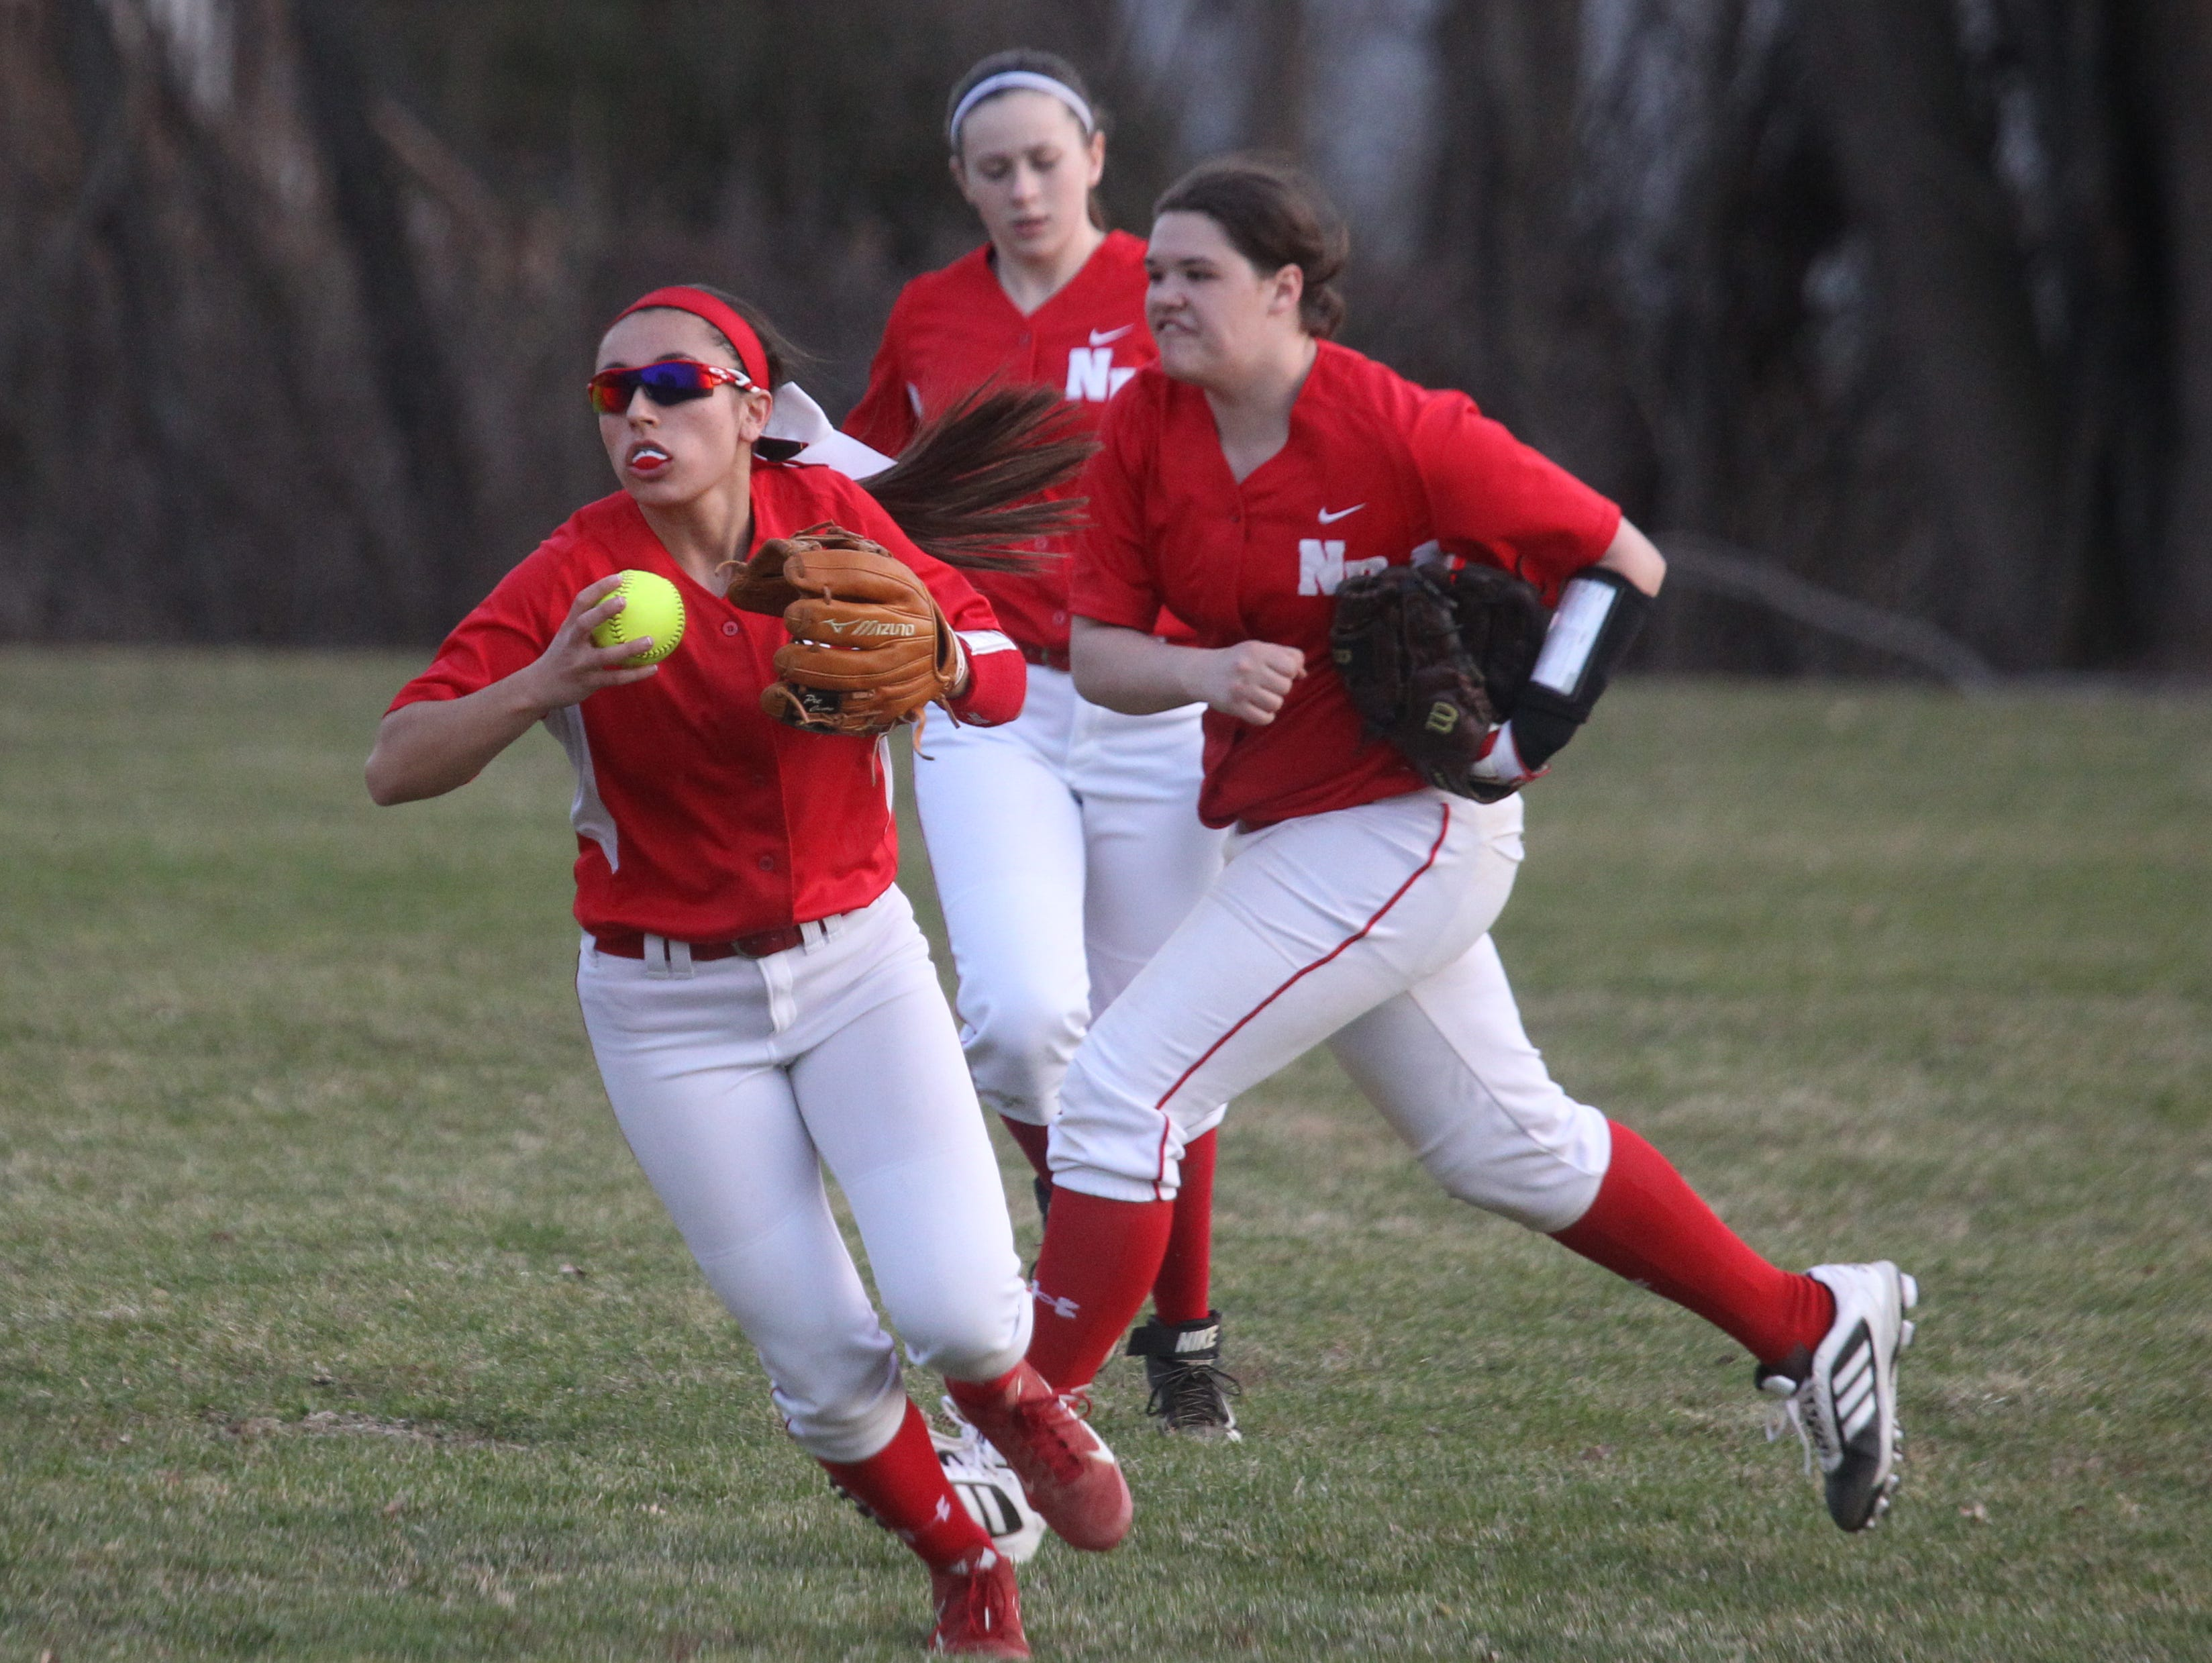 North Rockland's Victoria Alonso (front) and Amanda Schweitzer (middle) are two of several returning softball players for the Red Raiders this year.